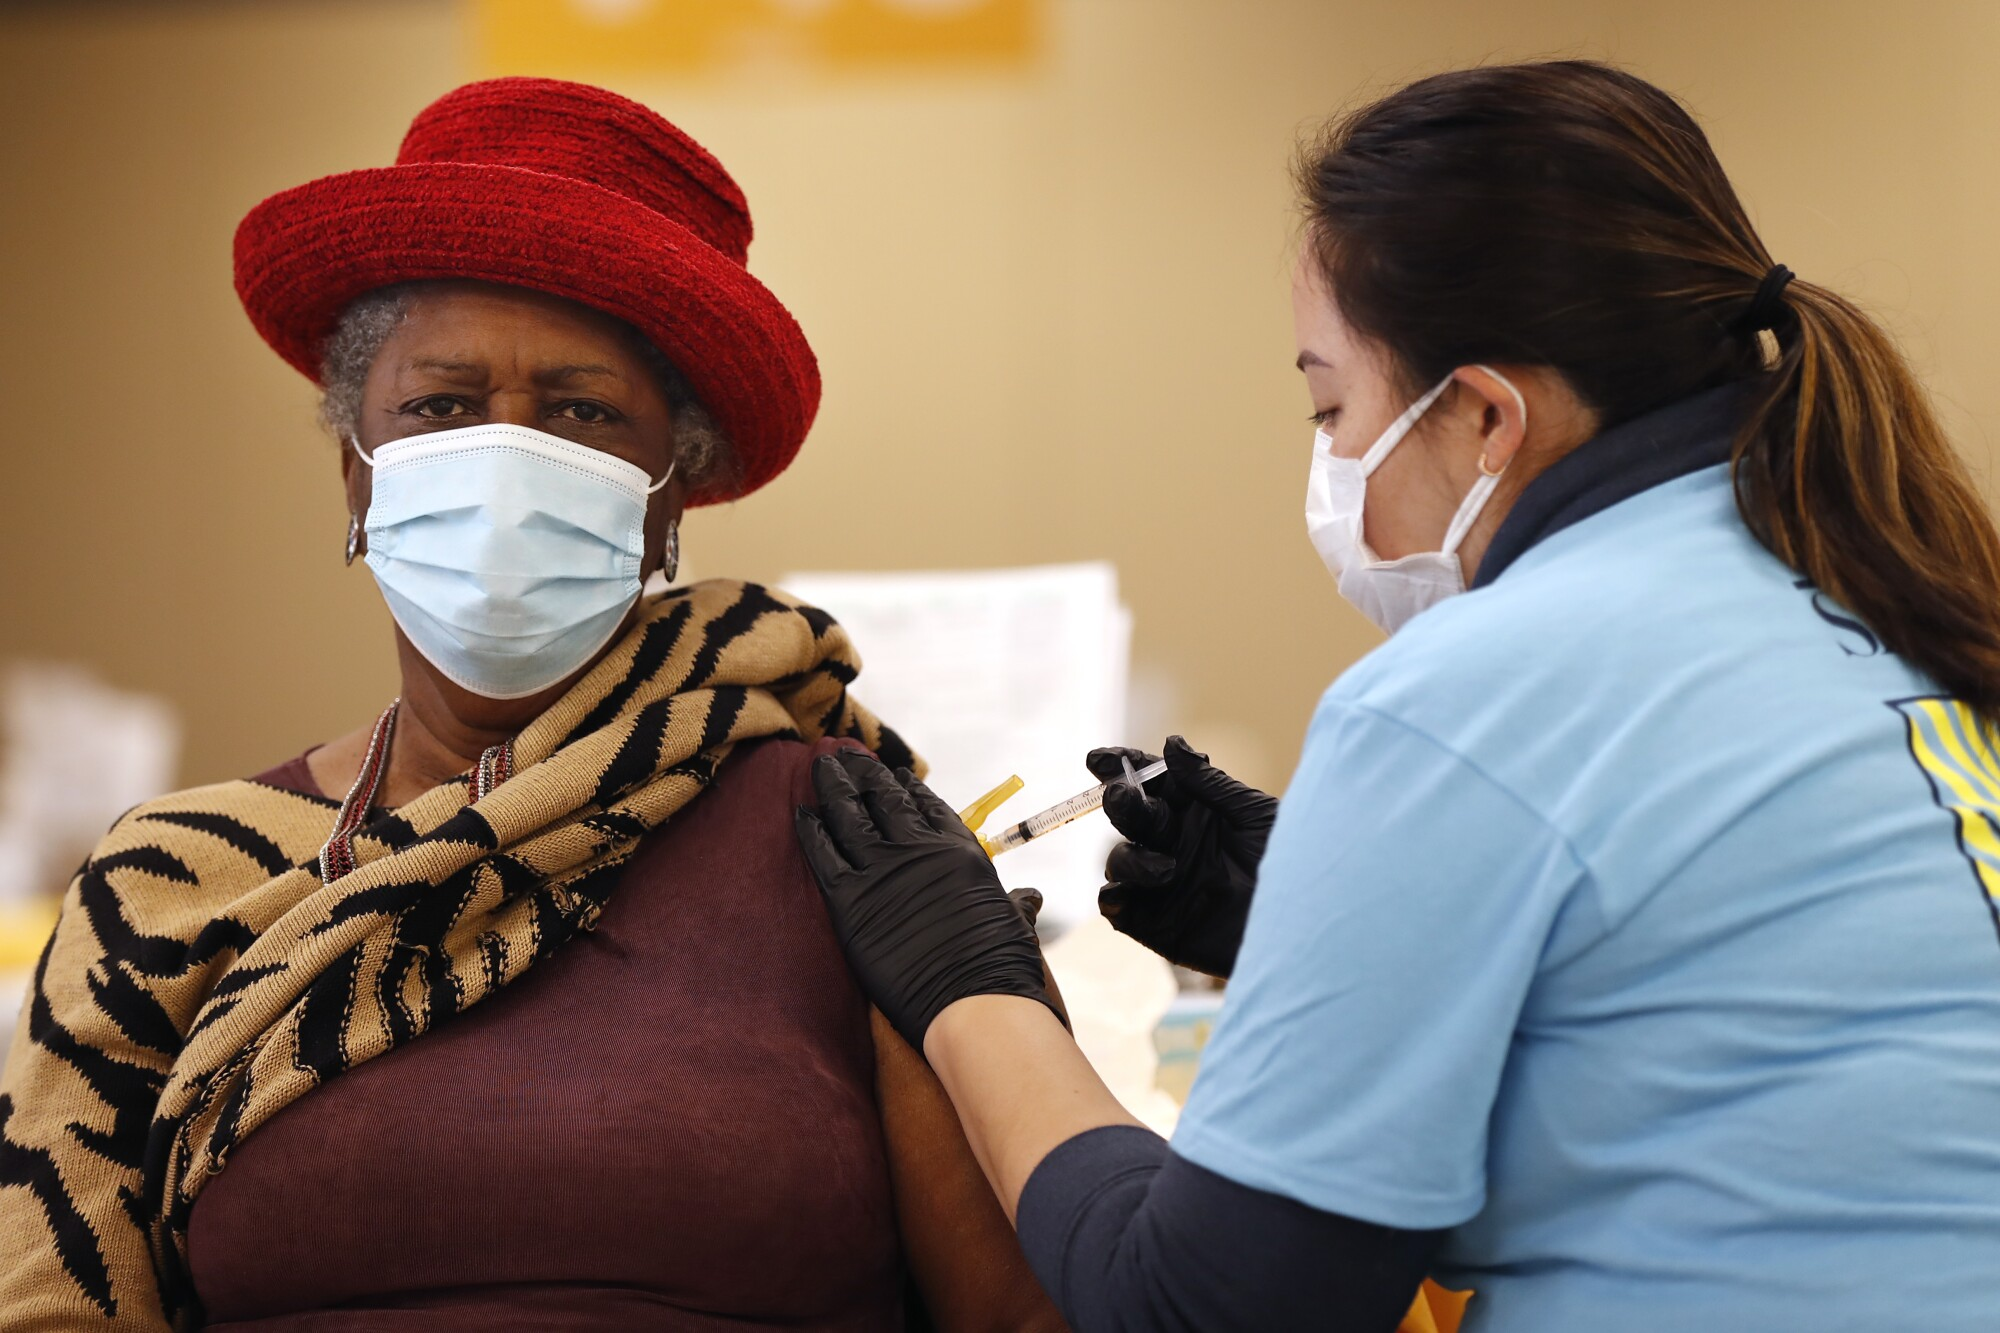 Earline Hilliard gets a COVID-19 vaccine shot from Tiffany White at the Sharp South Bay Super Station on Thursday.